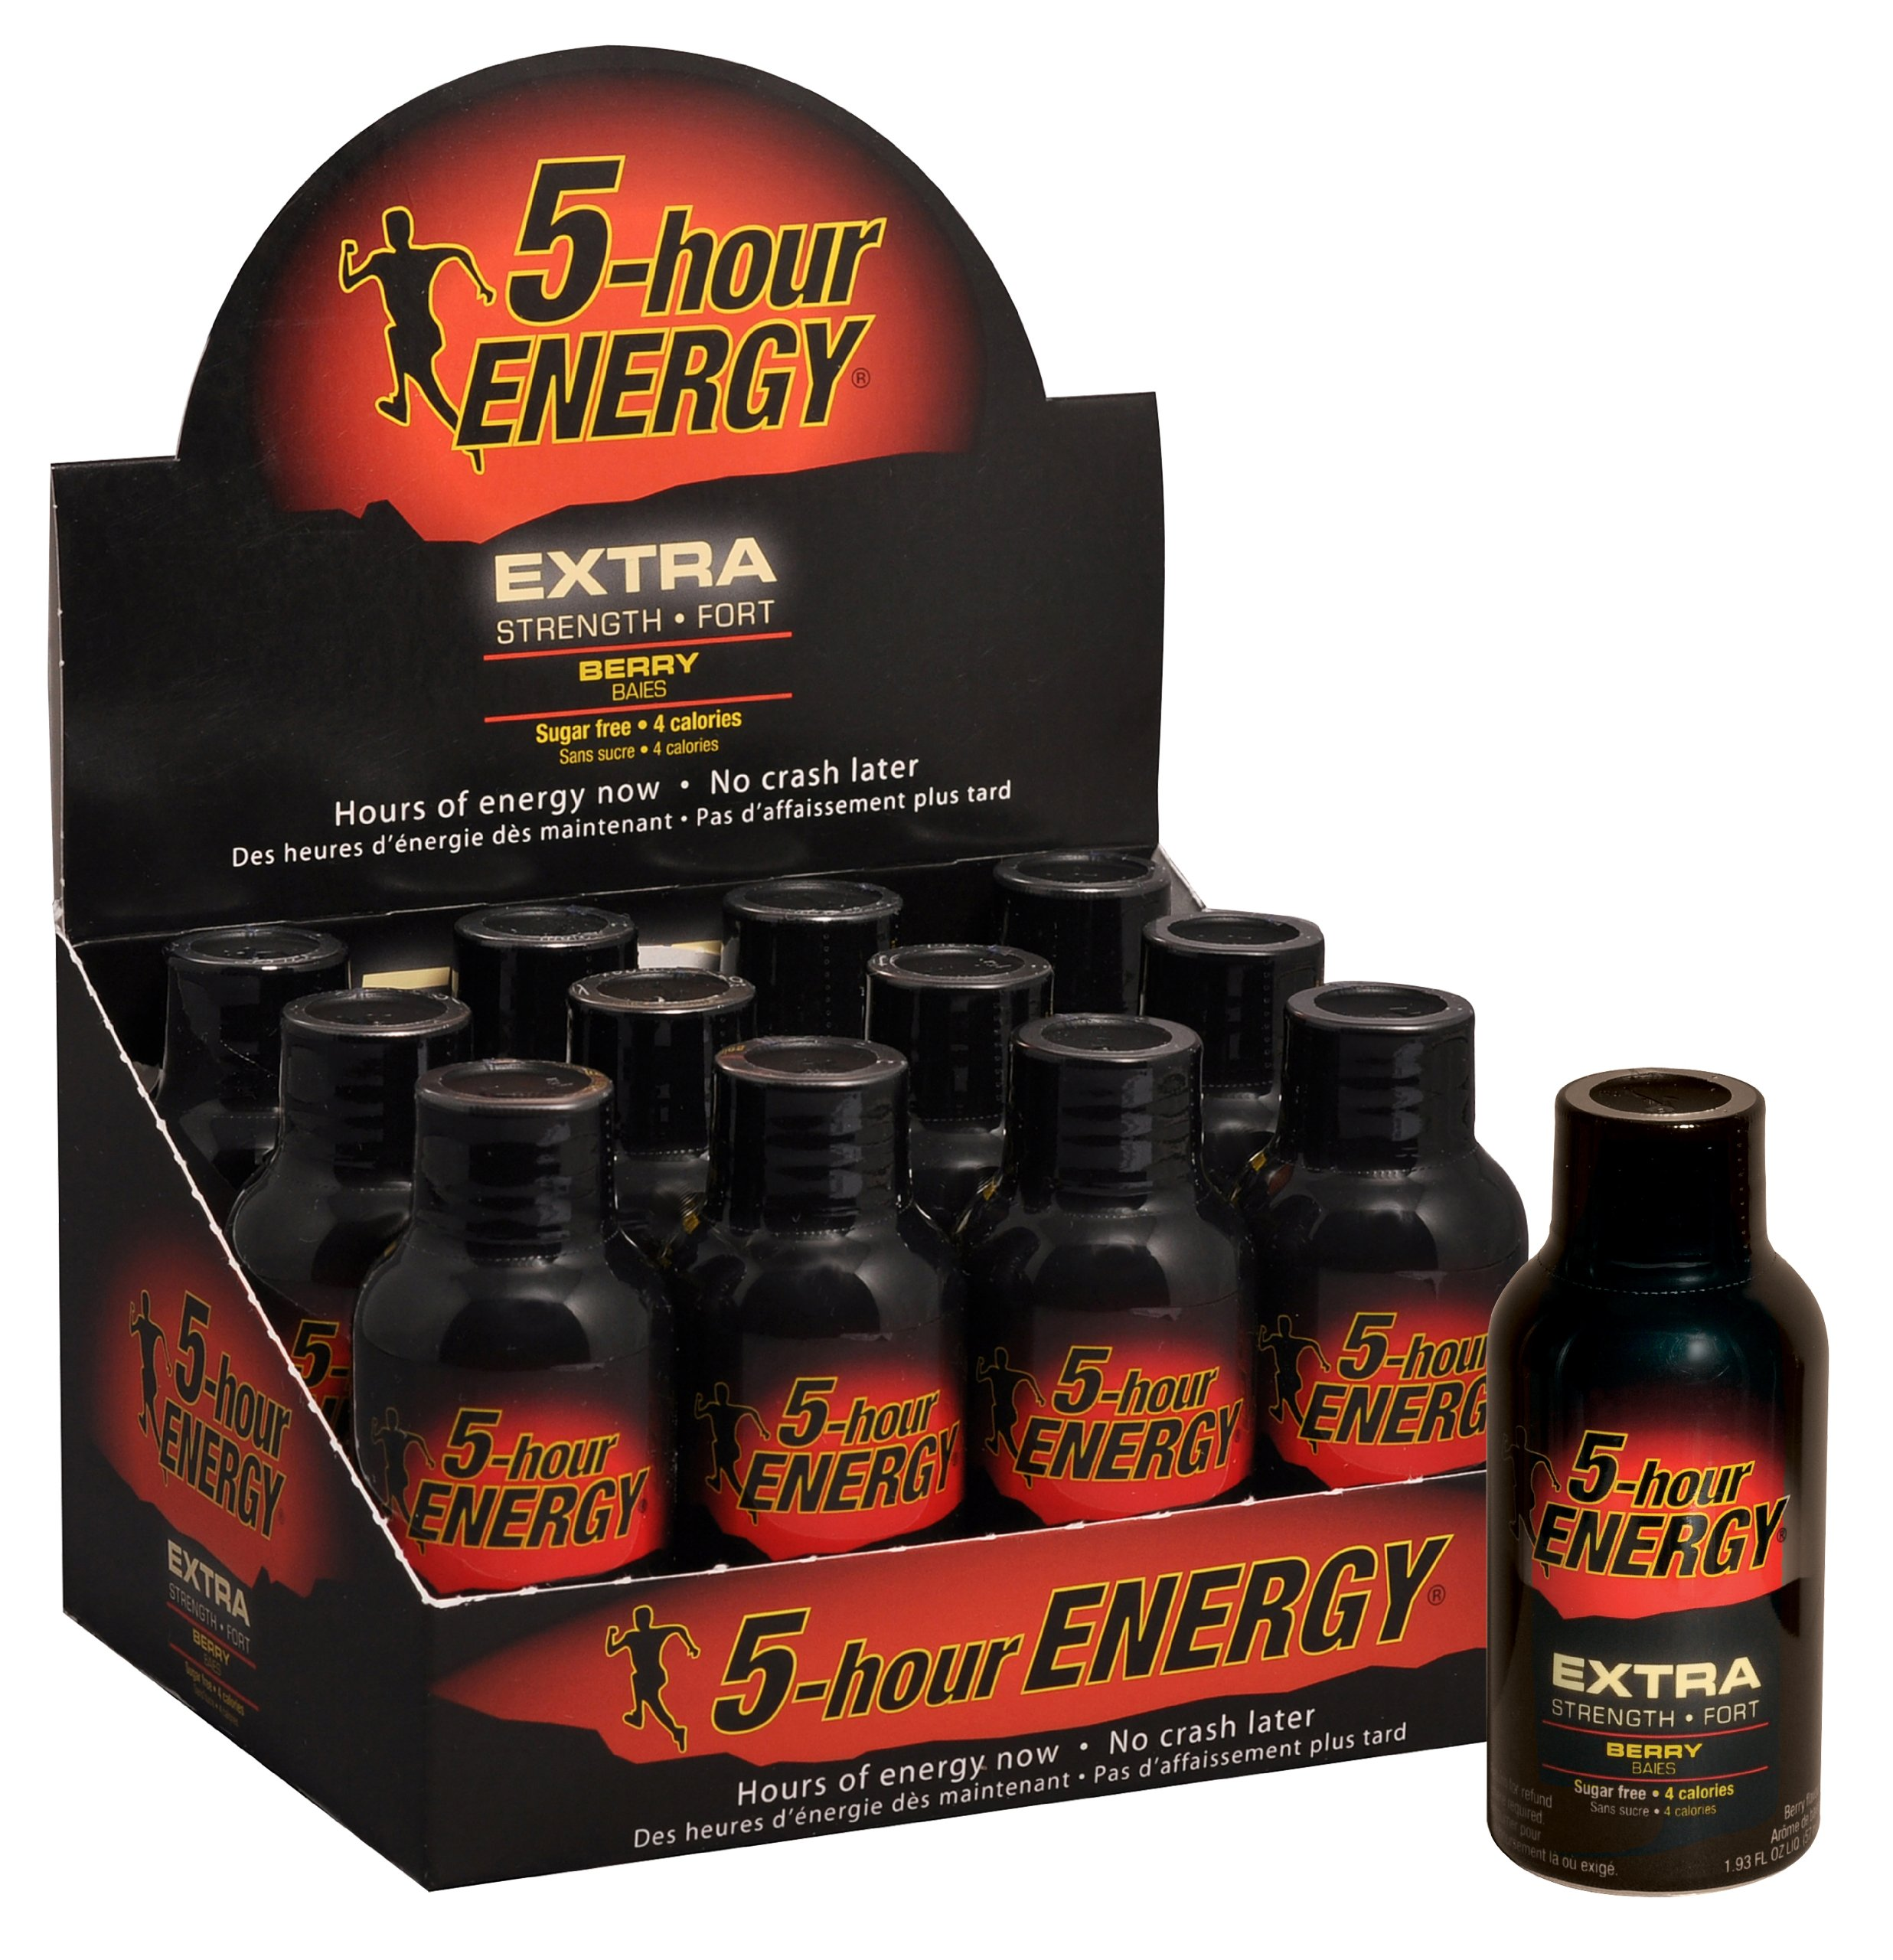 12 Pack of 5 Hour Energy and 12 Pack of 5 Hour Extra Strength, Combo Pack, 1.93 Fluid Ounces Box (Pack of 24) by 5 Hour Energy (Image #5)